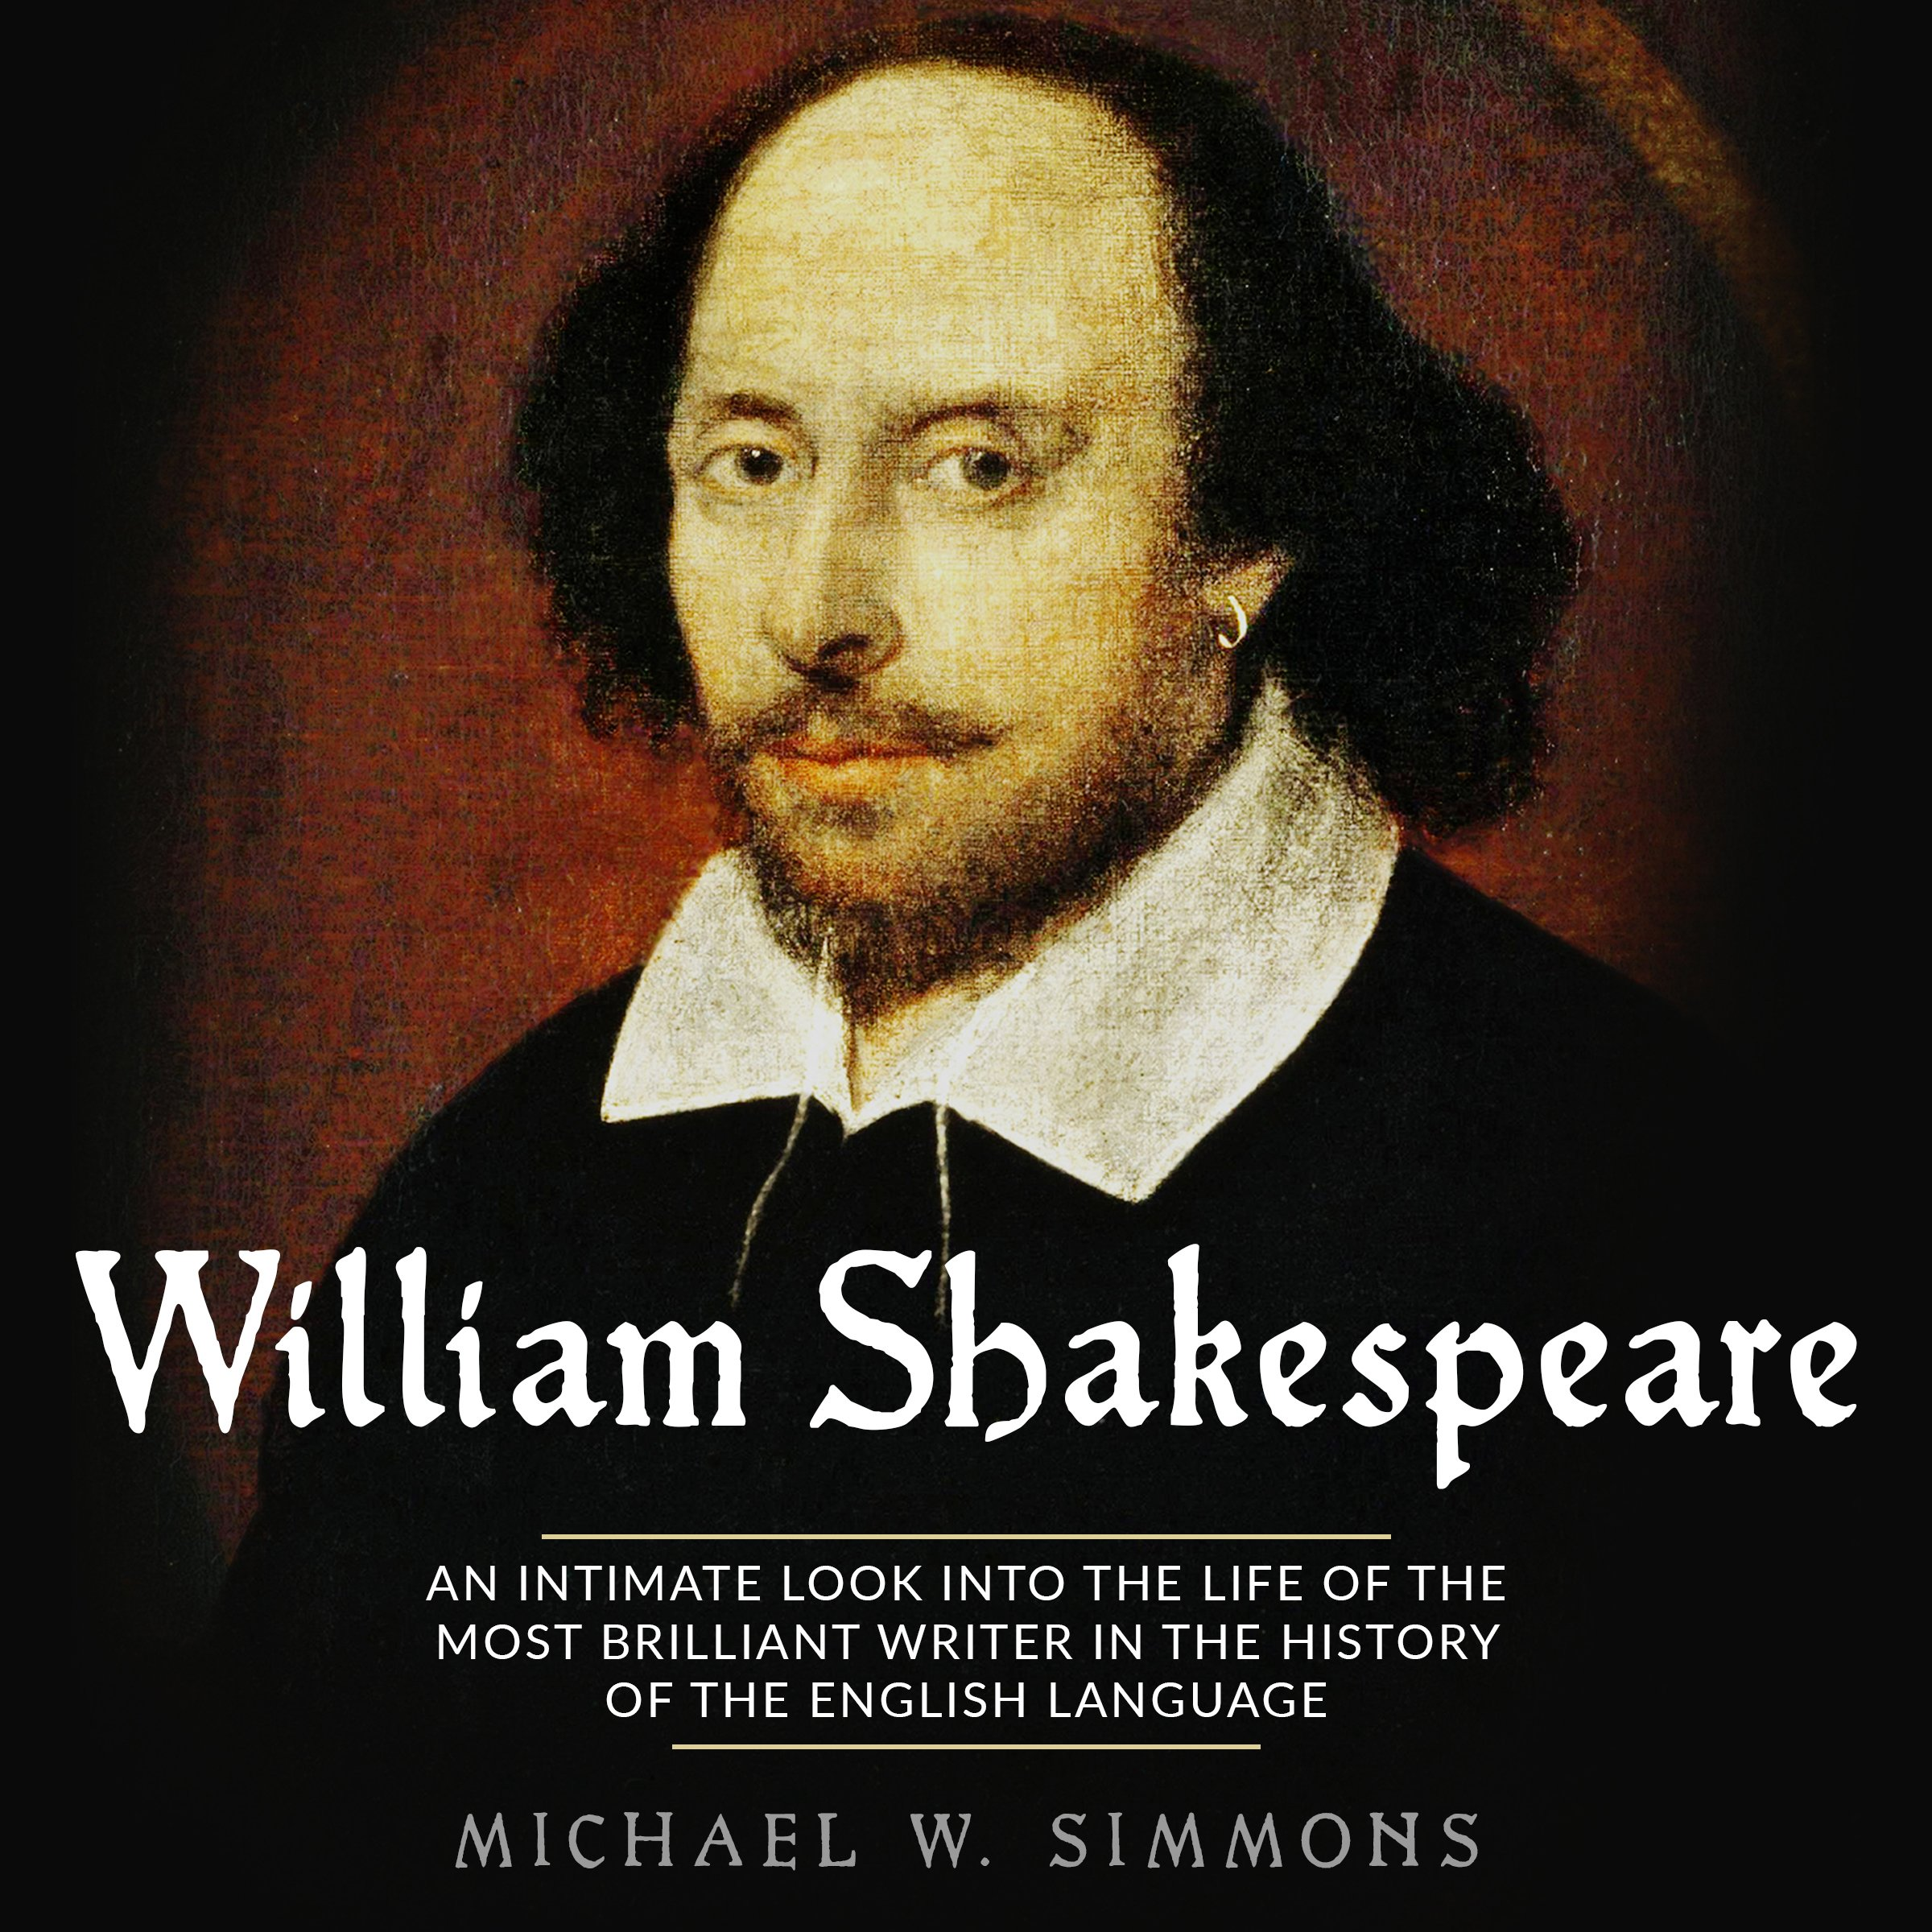 William Shakespeare: An Intimate Look into the Life of the Most Brilliant Writer in the History of the English Language by Make Profits Easy LLC